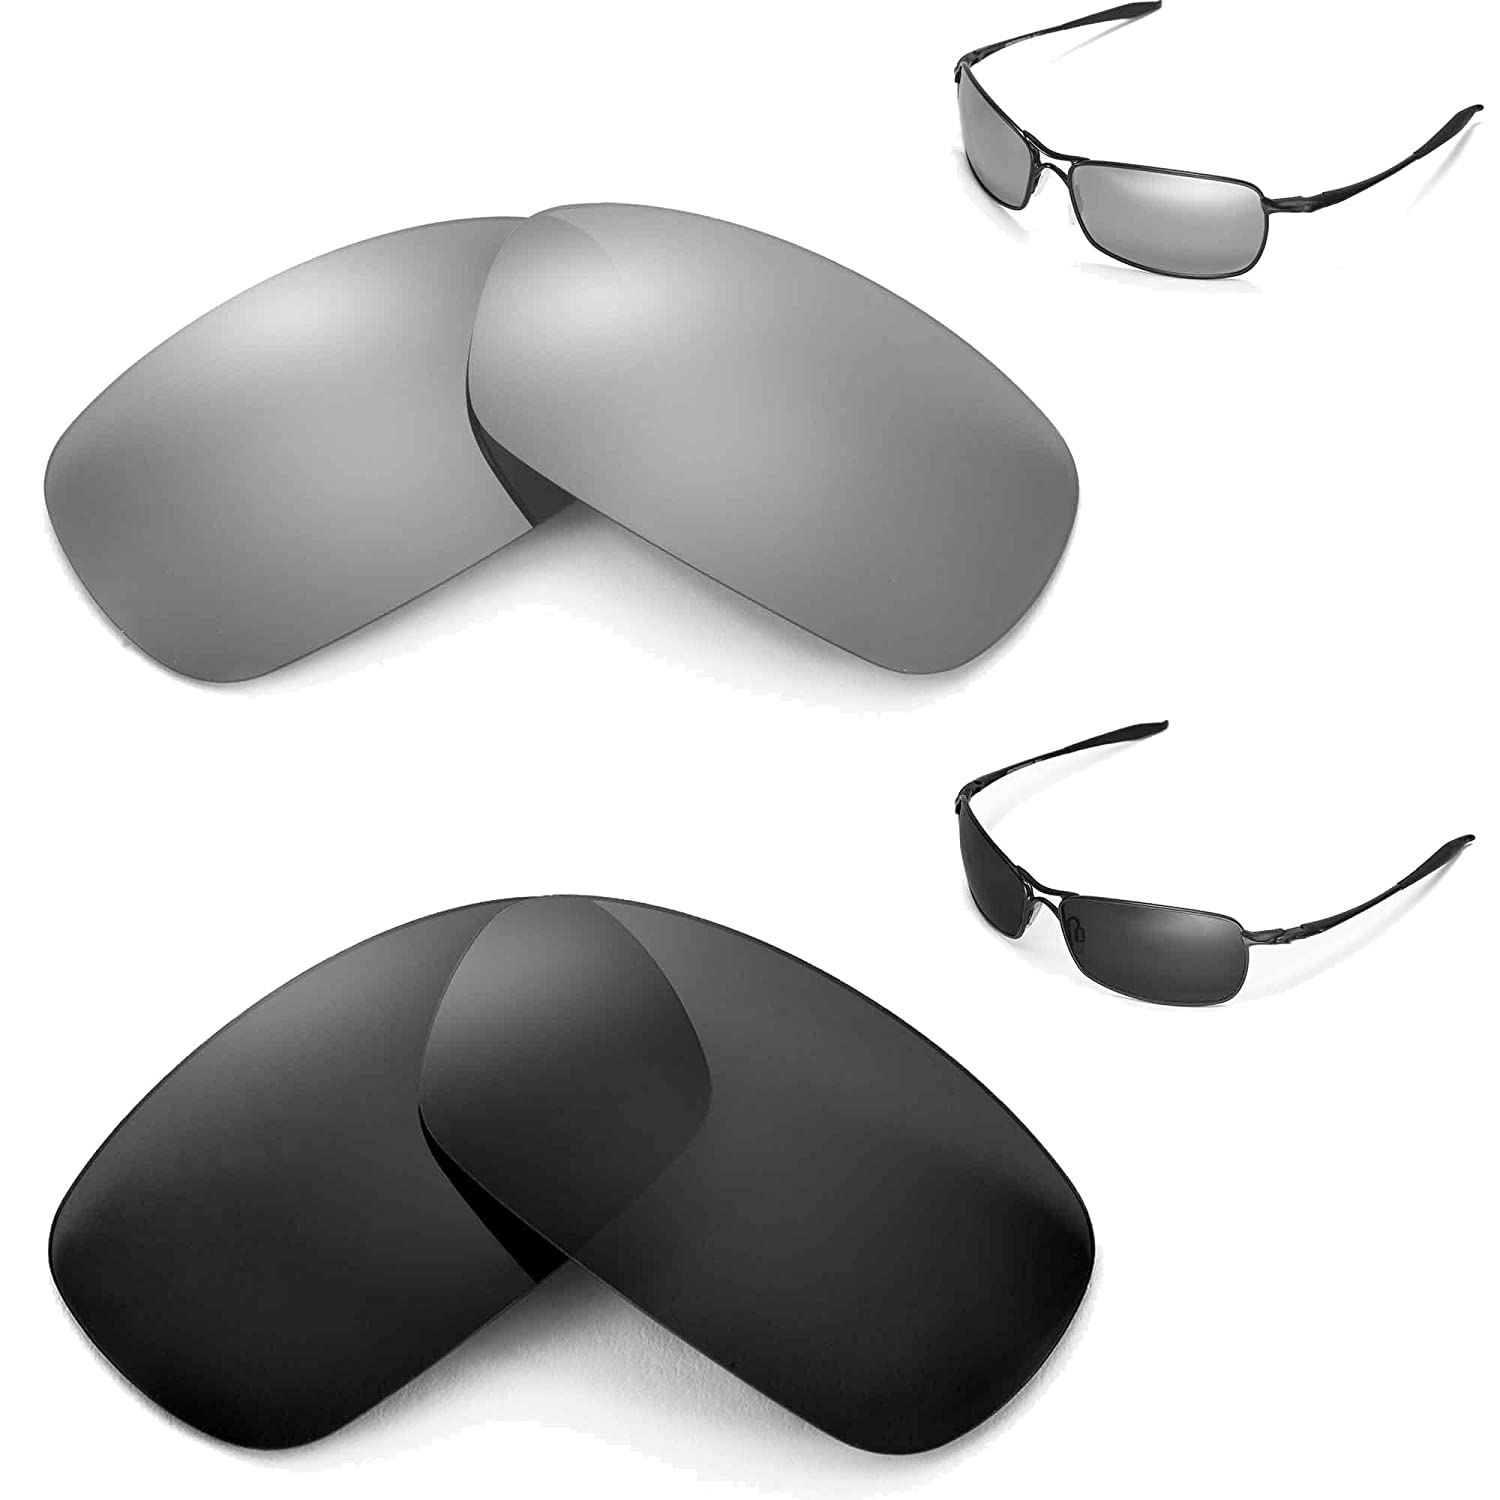 New Walleva Polarized Black + Titanium Lenses For Oakley Crosshair 2.0 (2010 version) oom control for eng lenses